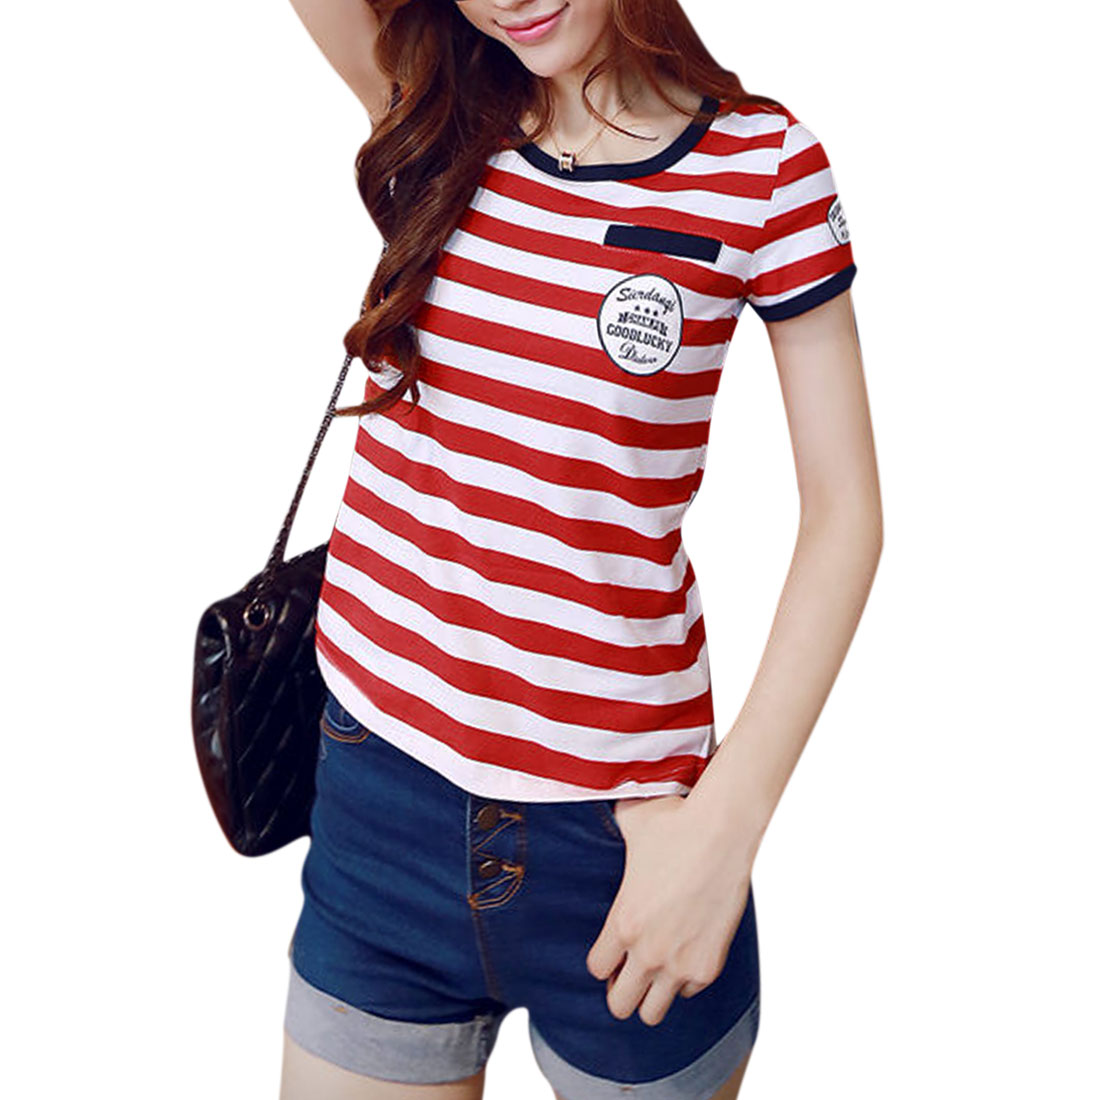 Women's Stripes Letters Prints Round Neck Short Sleeves Casual Tee Red (Size S / 4)